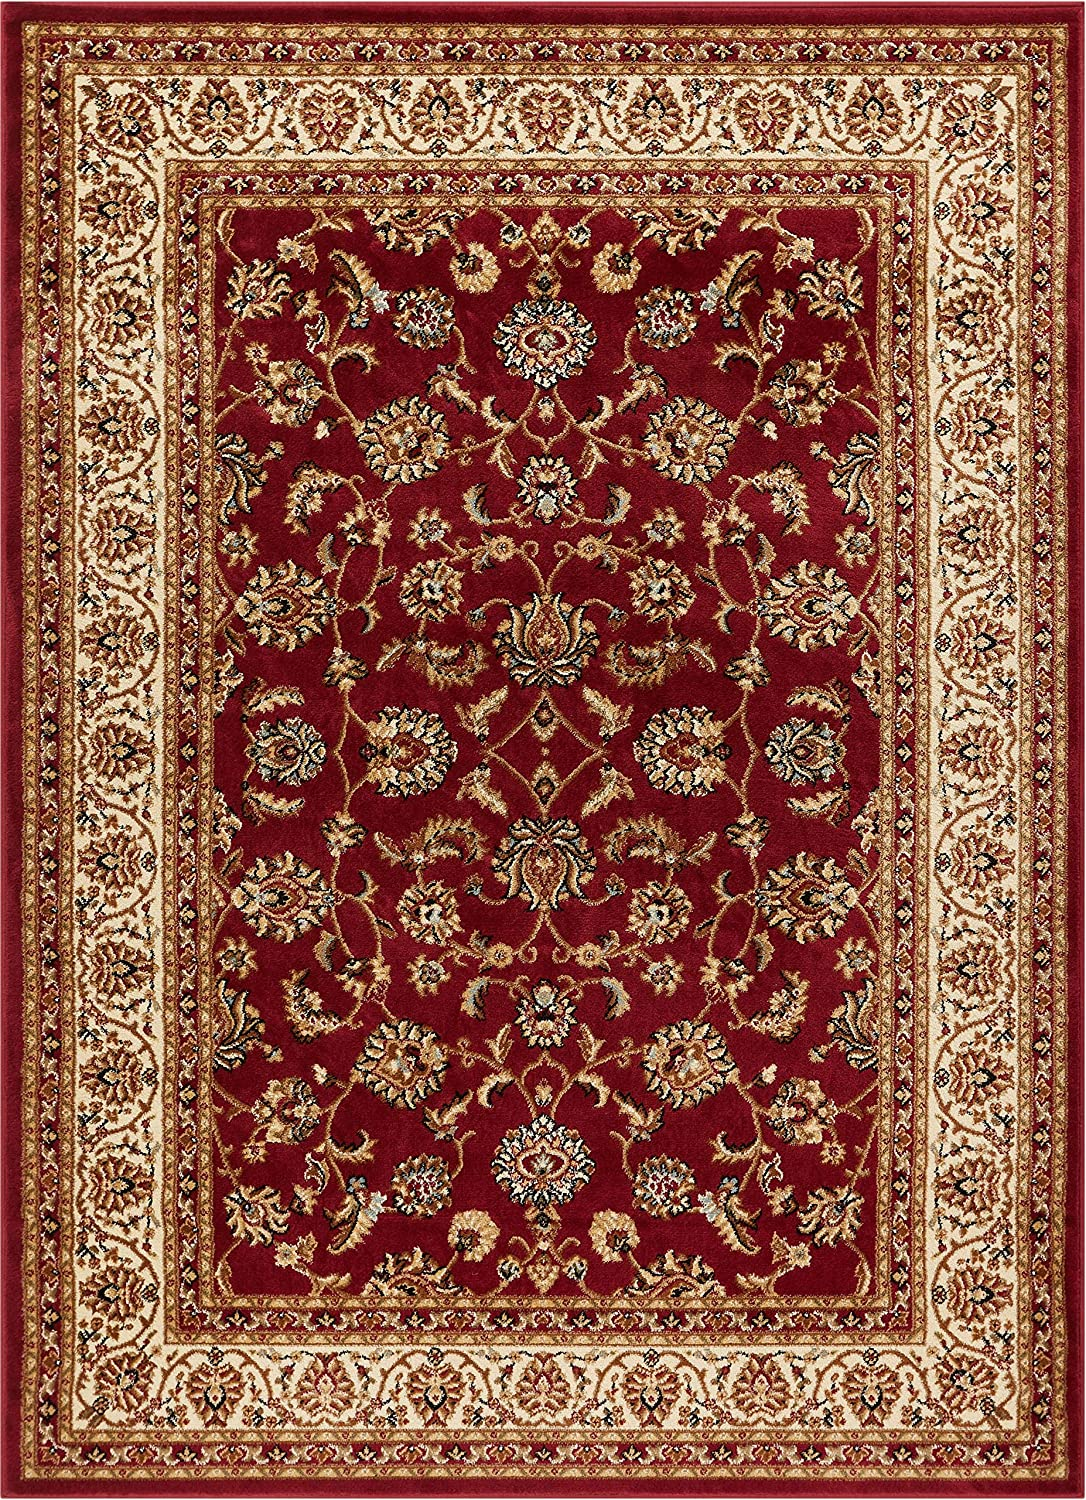 "Noble Sarouk Red Persian Floral Oriental Formal Traditional Area Rug 8x10 8x11 (7'10"" x 9'10"") Easy to Clean Stain Fade Resistant Shed Free Modern Contemporary Traditional Living Dining Room Rug"